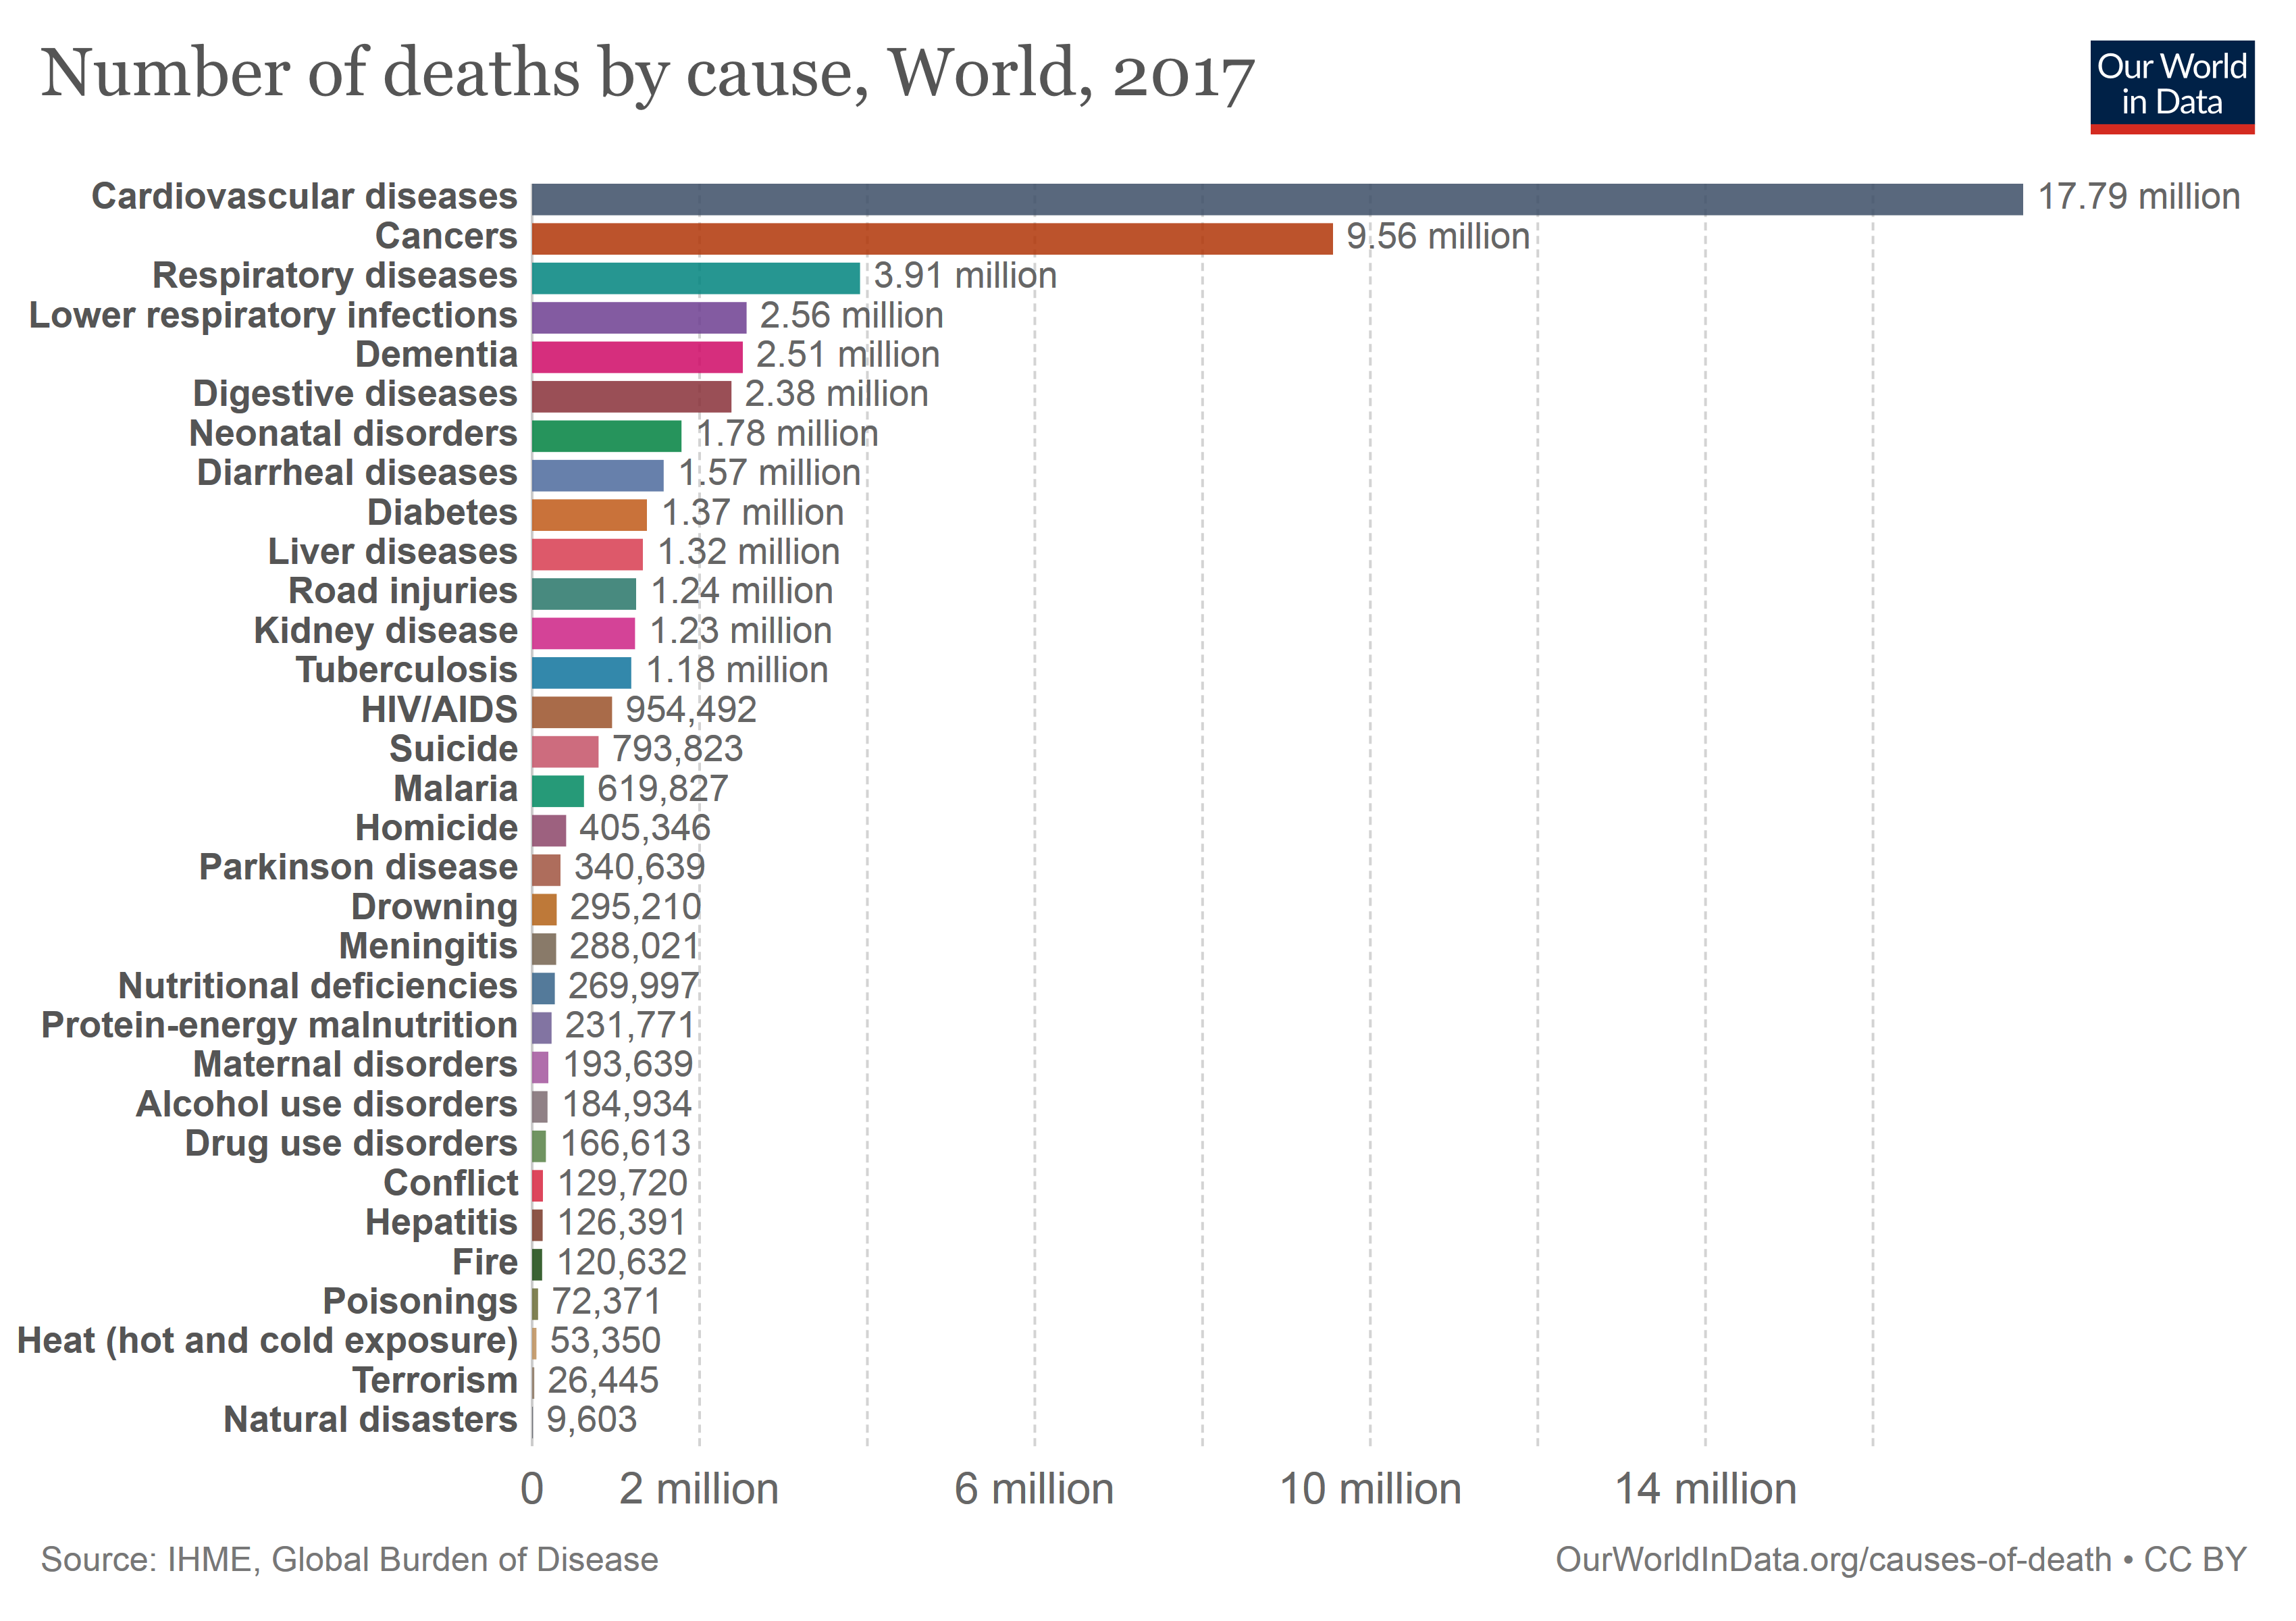 annual-number-of-deaths-by-cause.png